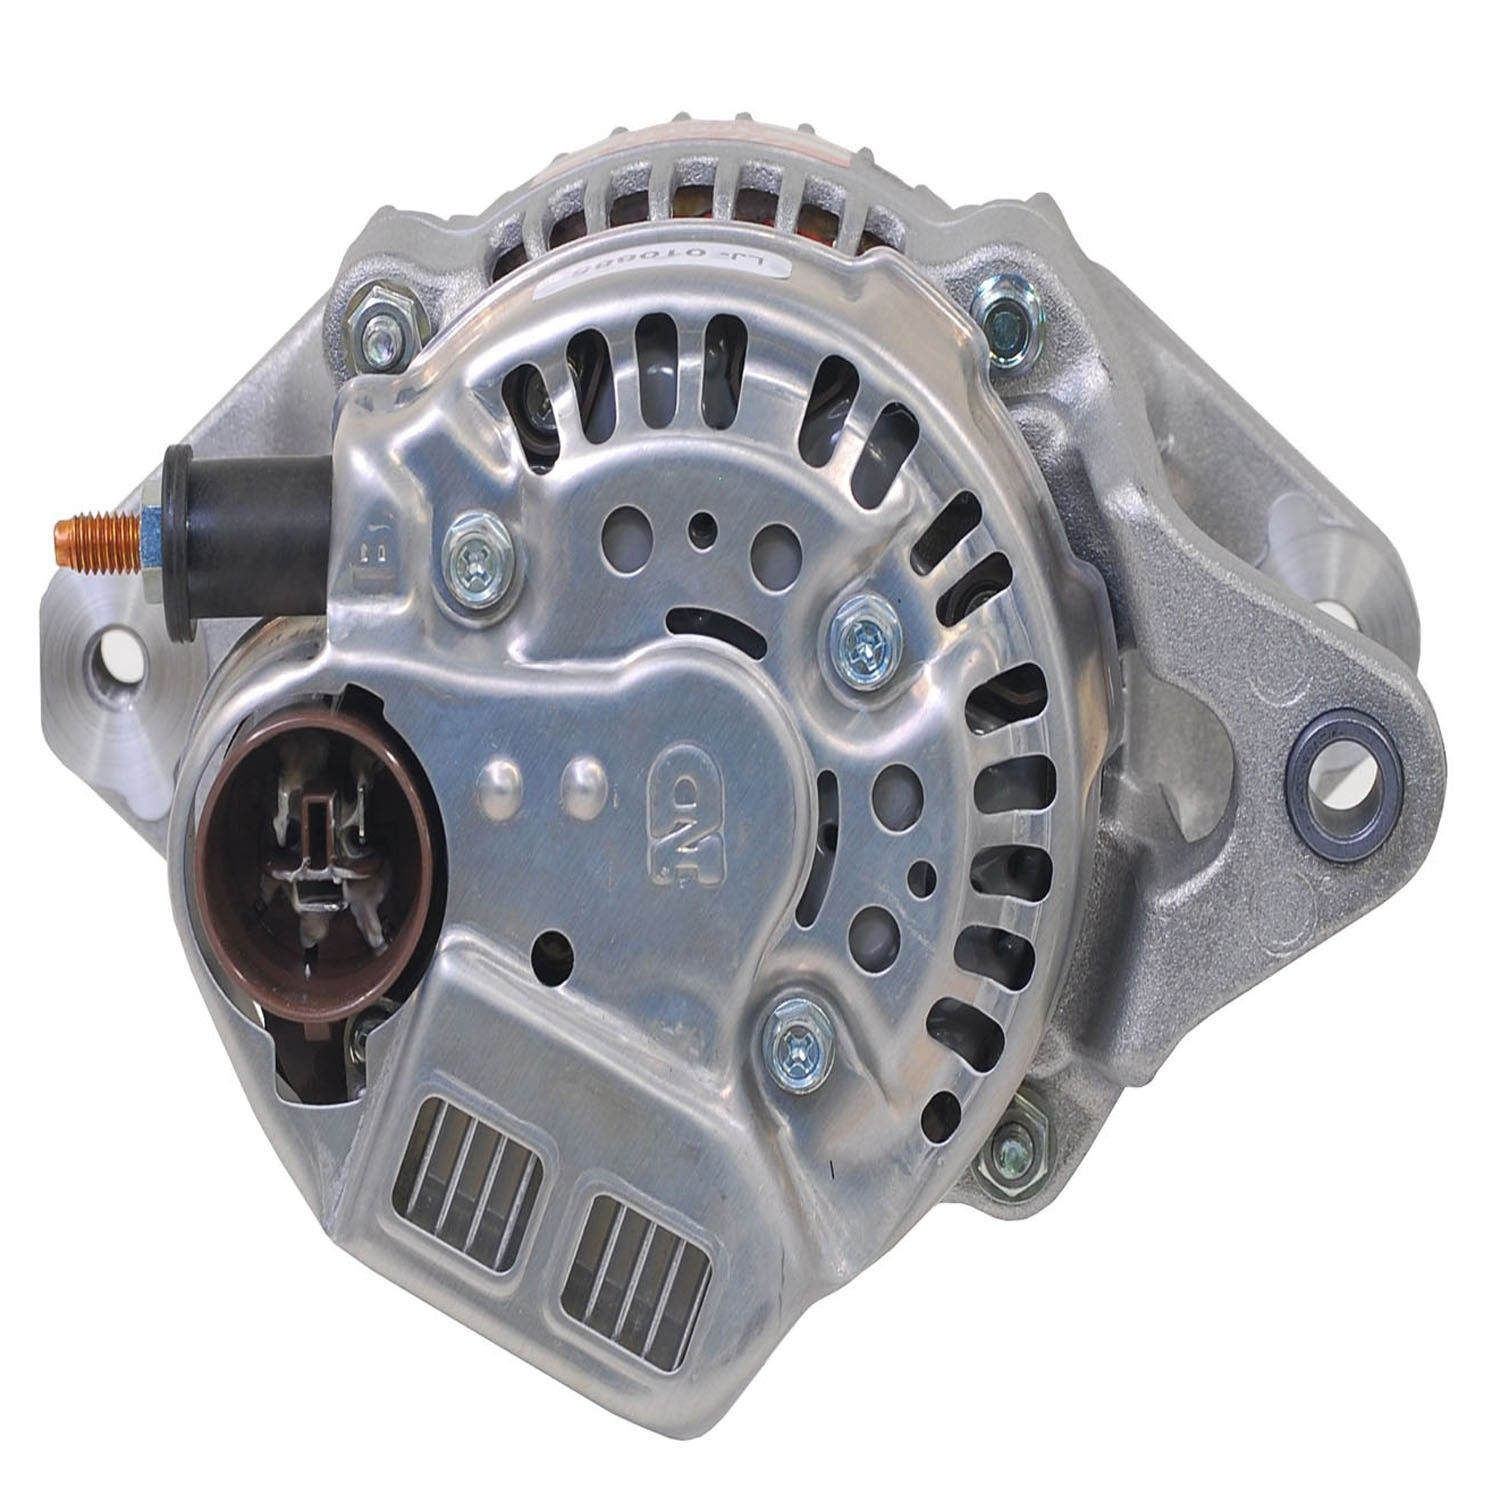 suzuki samurai alternator replacement denso mpa remy go parts rh go parts com